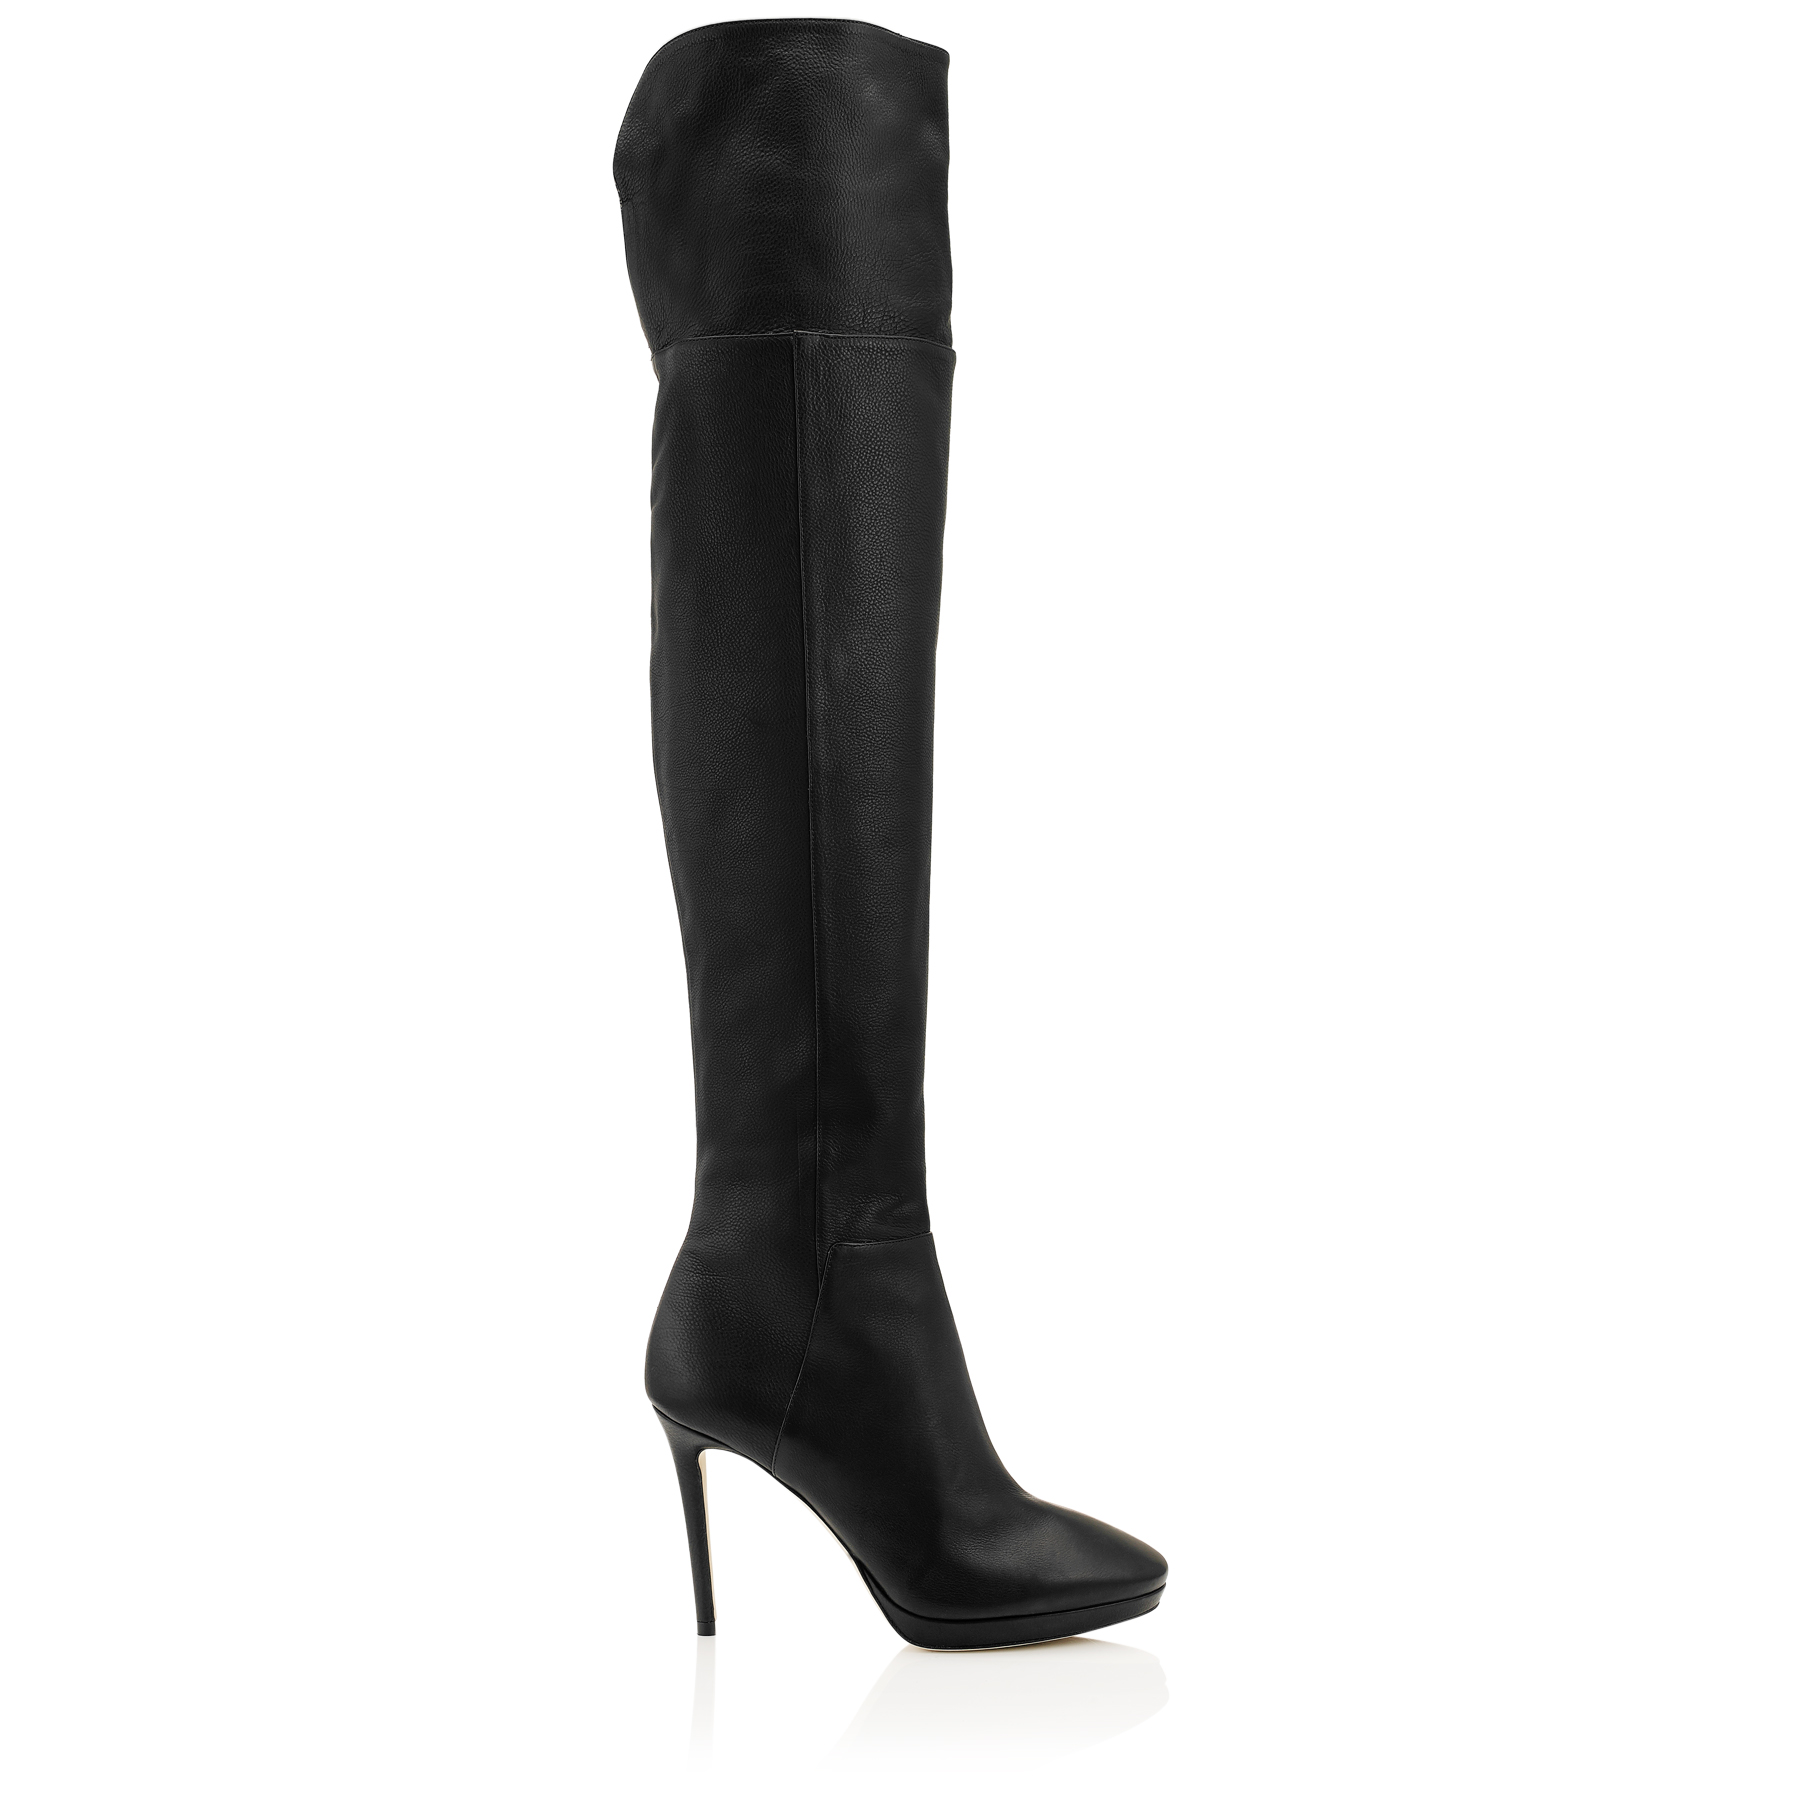 HAYLEY 100 Black Grainy Calf Leather Over-The-Knee Boots by Jimmy Choo